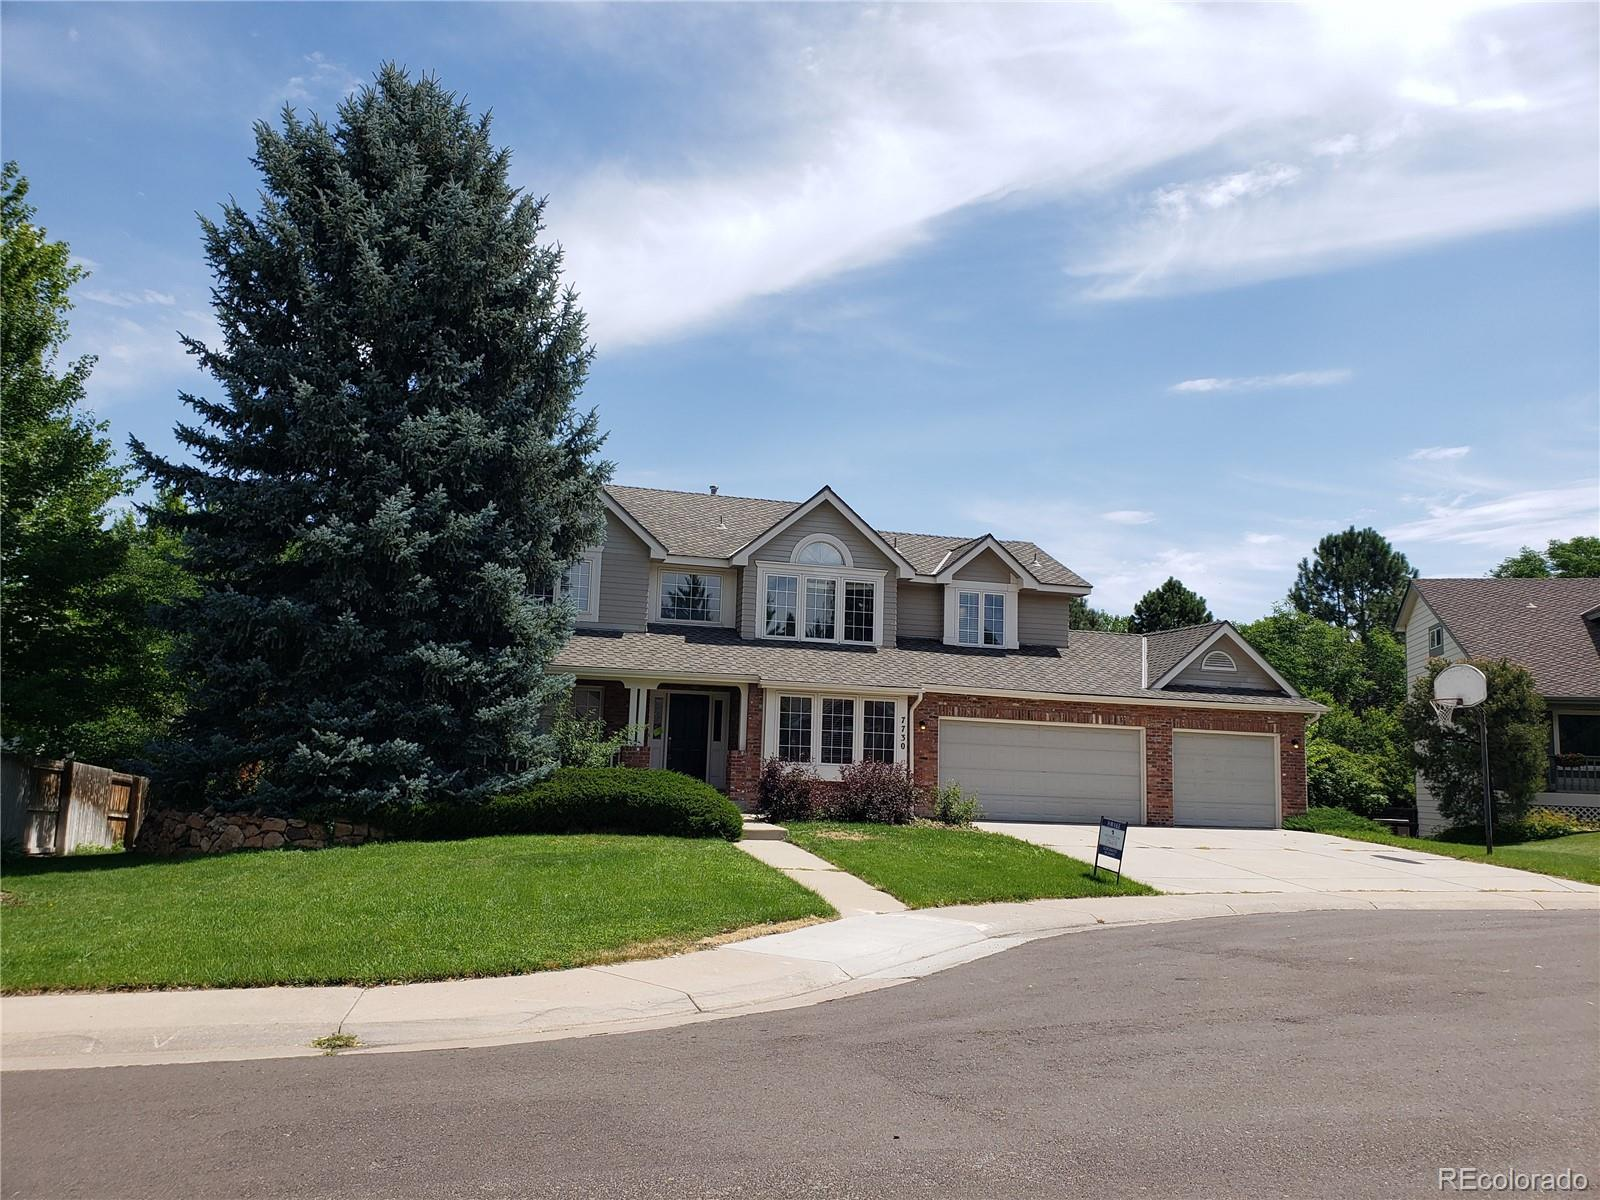 7730 S Lakeview Court, Littleton, CO 80120 - #: 7140581